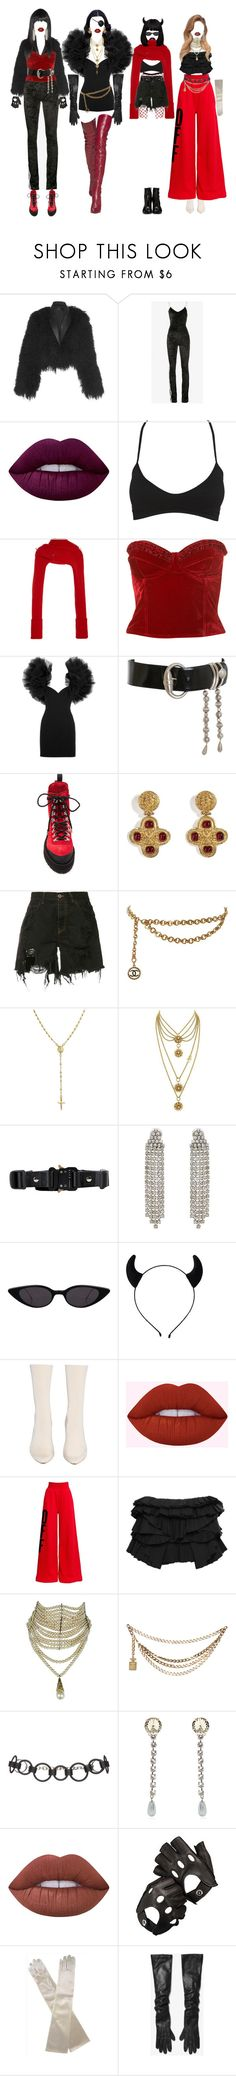 """""""-i've got inspiration"""" by salt-sugar ❤ liked on Polyvore featuring Off-White, Lime Crime, Wet Seal, Paper London, Yves Saint Laurent, Versace, Chanel, Faith Connexion, Bling Jewelry and Juicy Couture"""